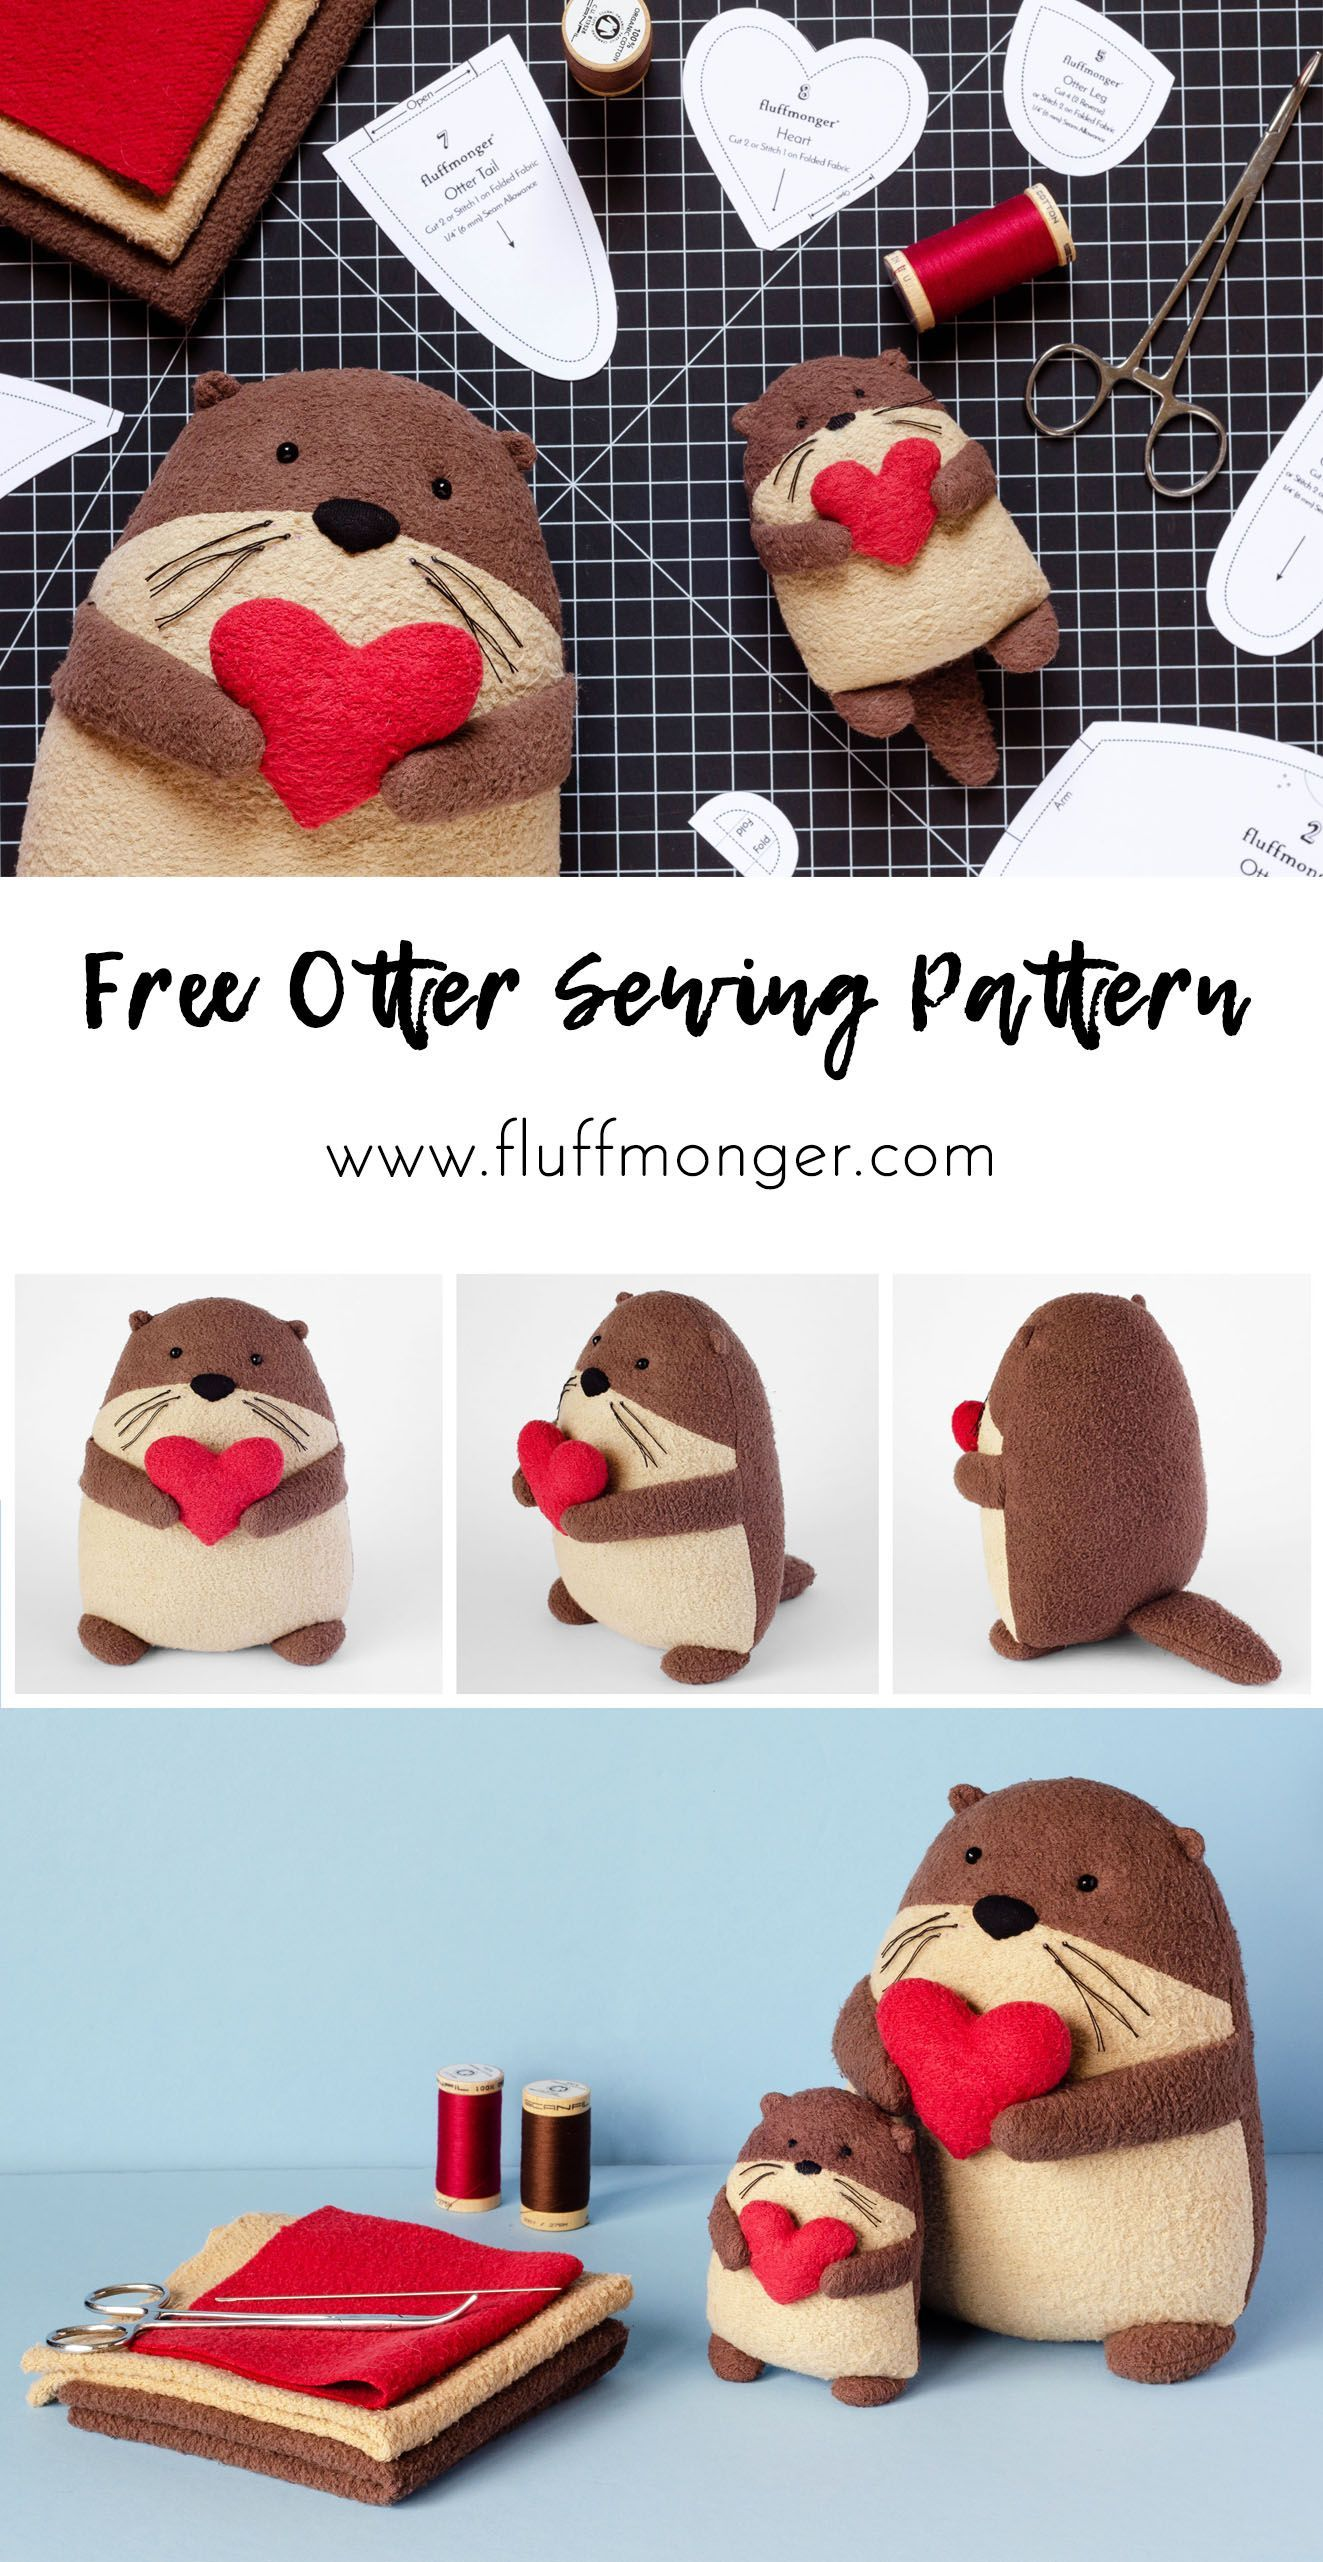 Squeakers the Otter Free Sewing Pattern and Tutorial #sewingtoys épinglé par ❃❀CM❁✿⊱Free Otter Sewing Pattern by Fluffmonger — DIY Plush Otter, DIY Gifts, Stuffed otter tutorial, River otter plush, sea otter plush, Sewing with kids, sewing for kids, DIY Christmas Gift, DIY Valentine's Day Gift #autumncolours